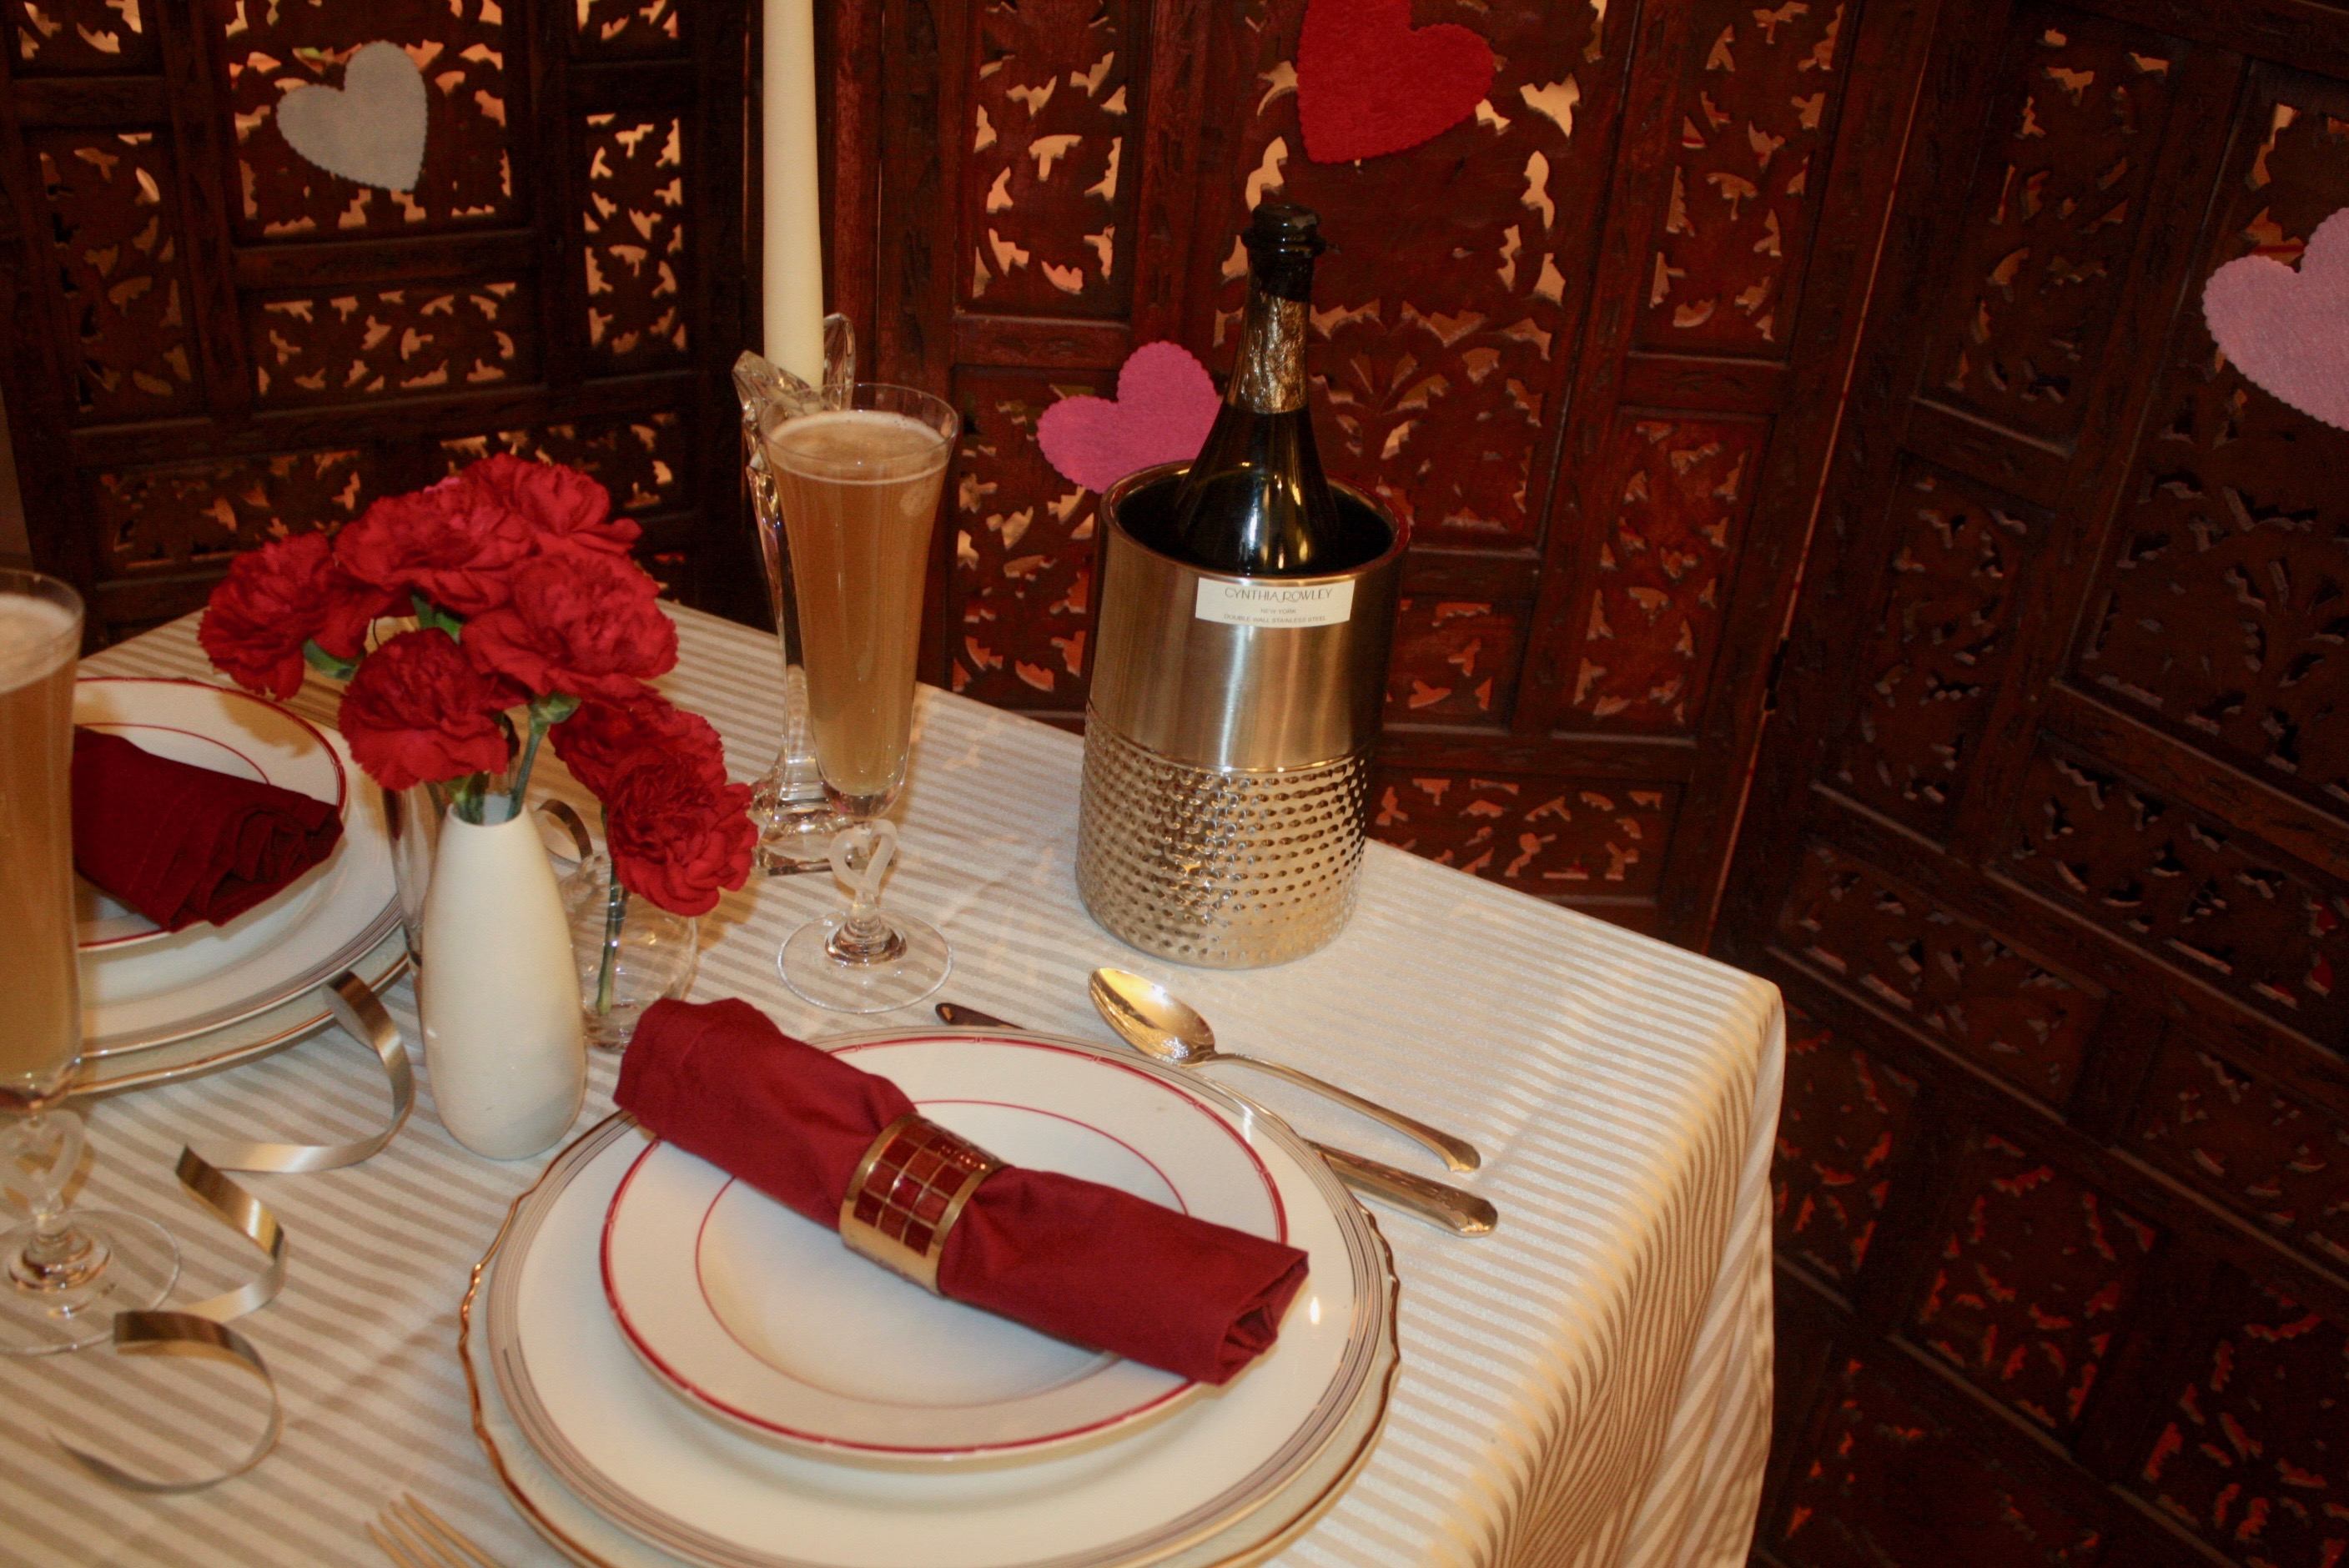 & Valentineu0027s Day Table Setting: Romantic Table for Two - Moshi Motif